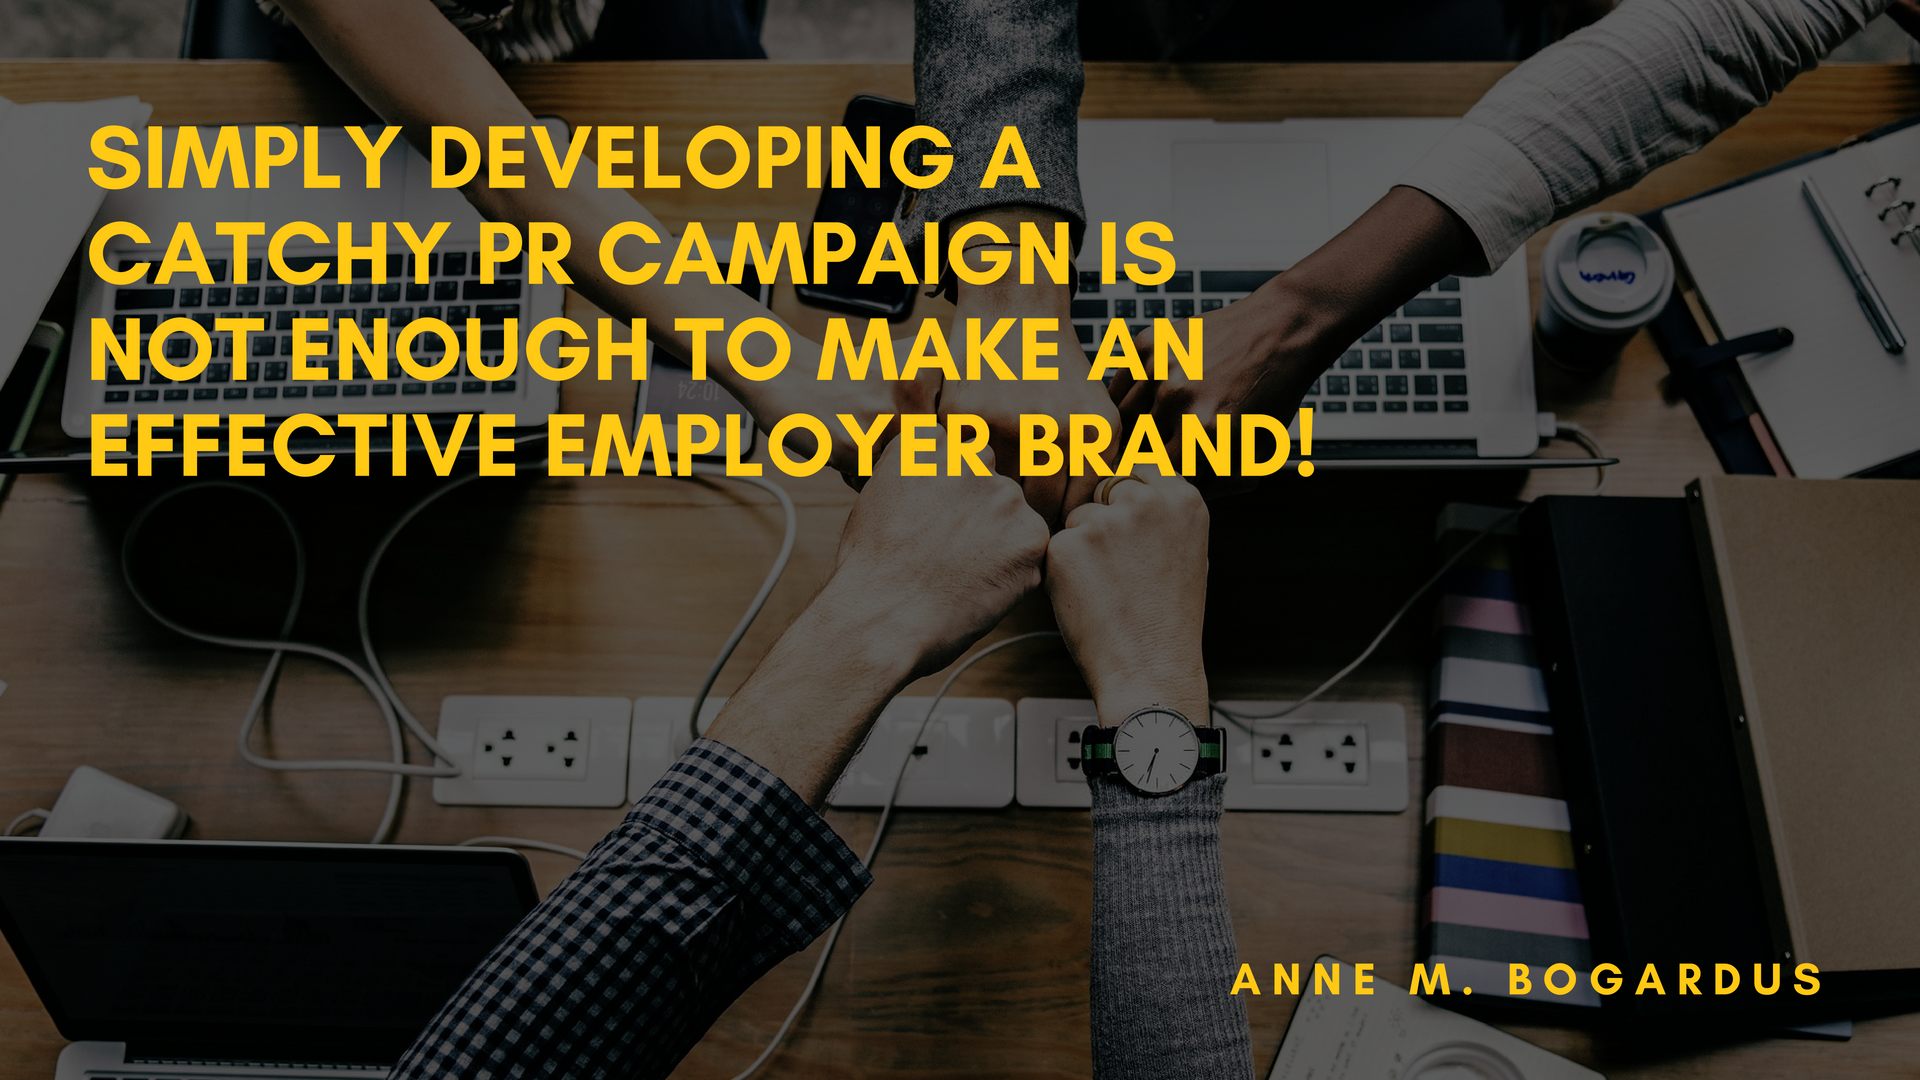 SIMPLY DEVELOPING A CATCHY PR CAMPAIGN IS NOT ENOUGH TO MAKE AN EFFECTIVE EMPLOYER BRAND!